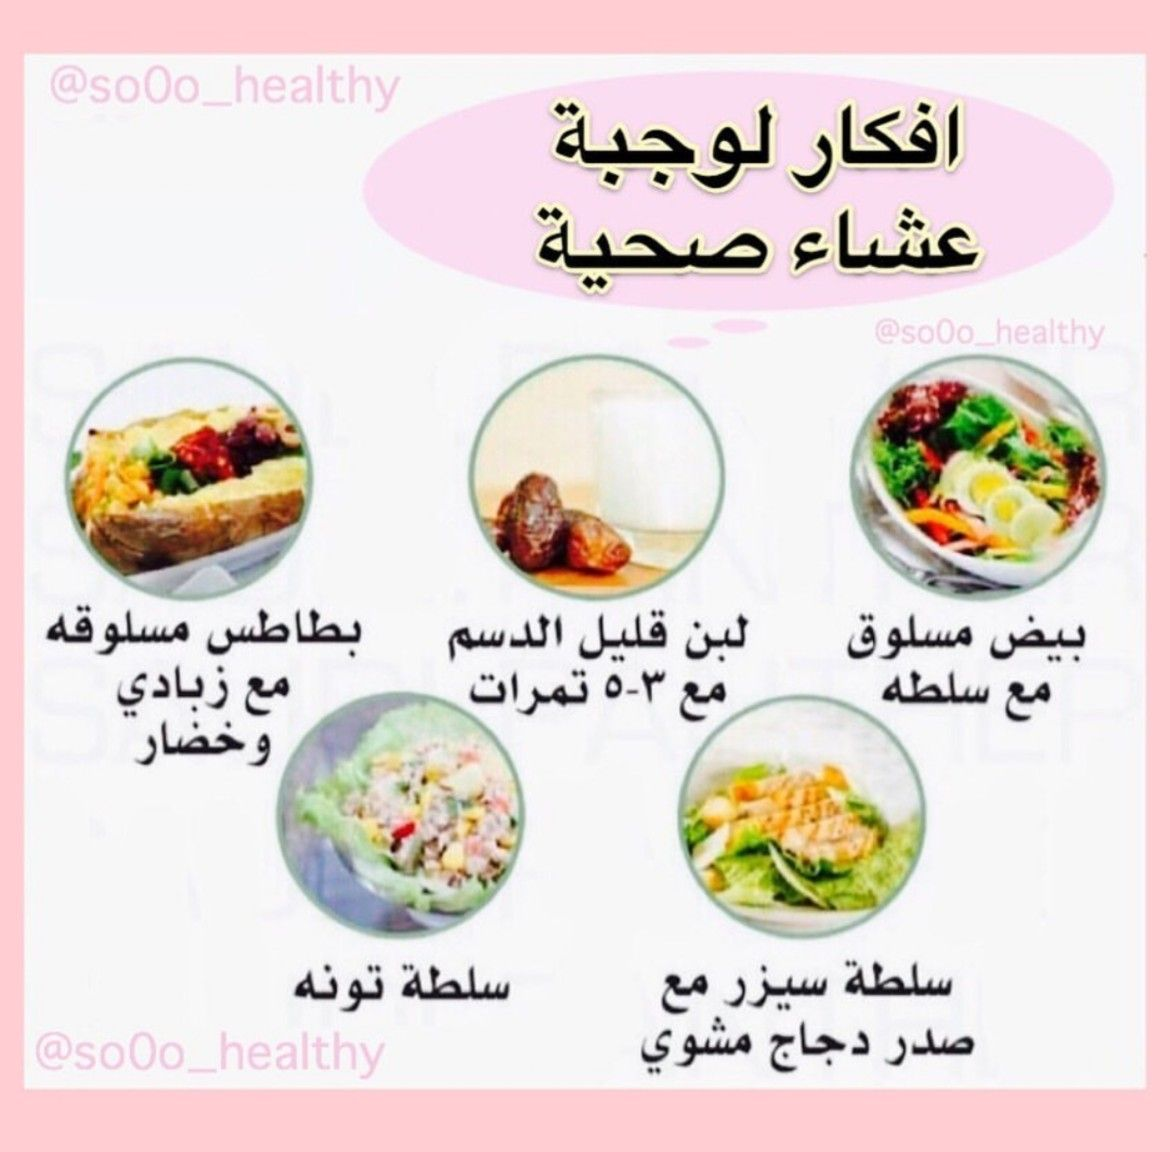 Pin By Sana Azhary On Healthy Life Experience Health Fitness Food Health Facts Food Workout Food